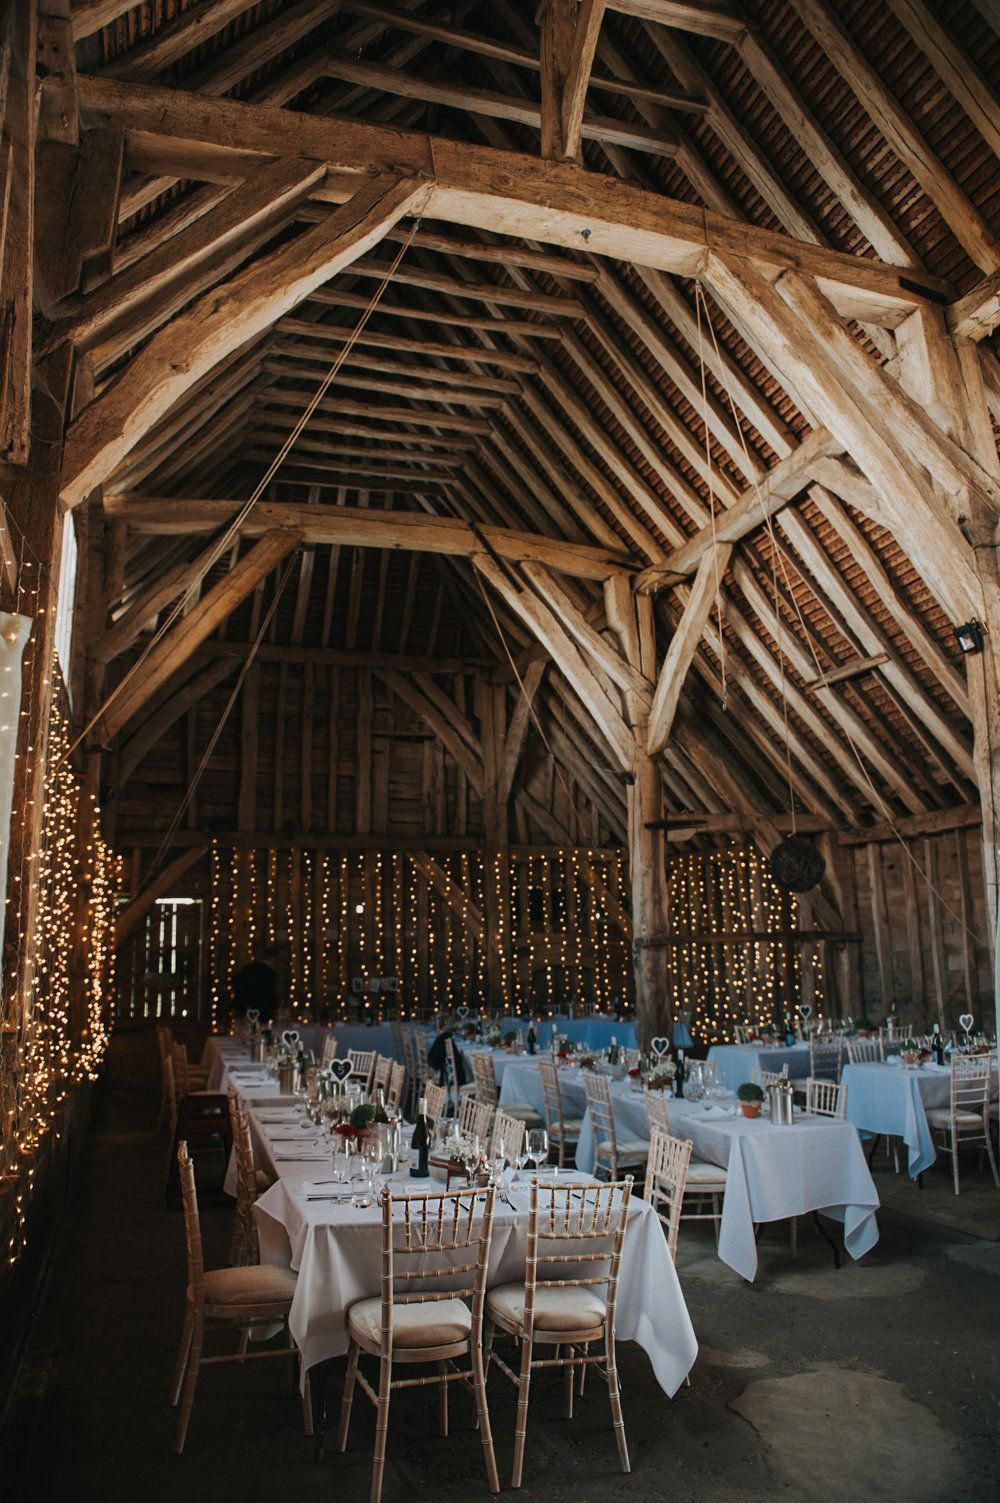 Wedding venue UK - barn wedding - St Albans | Wedding ...